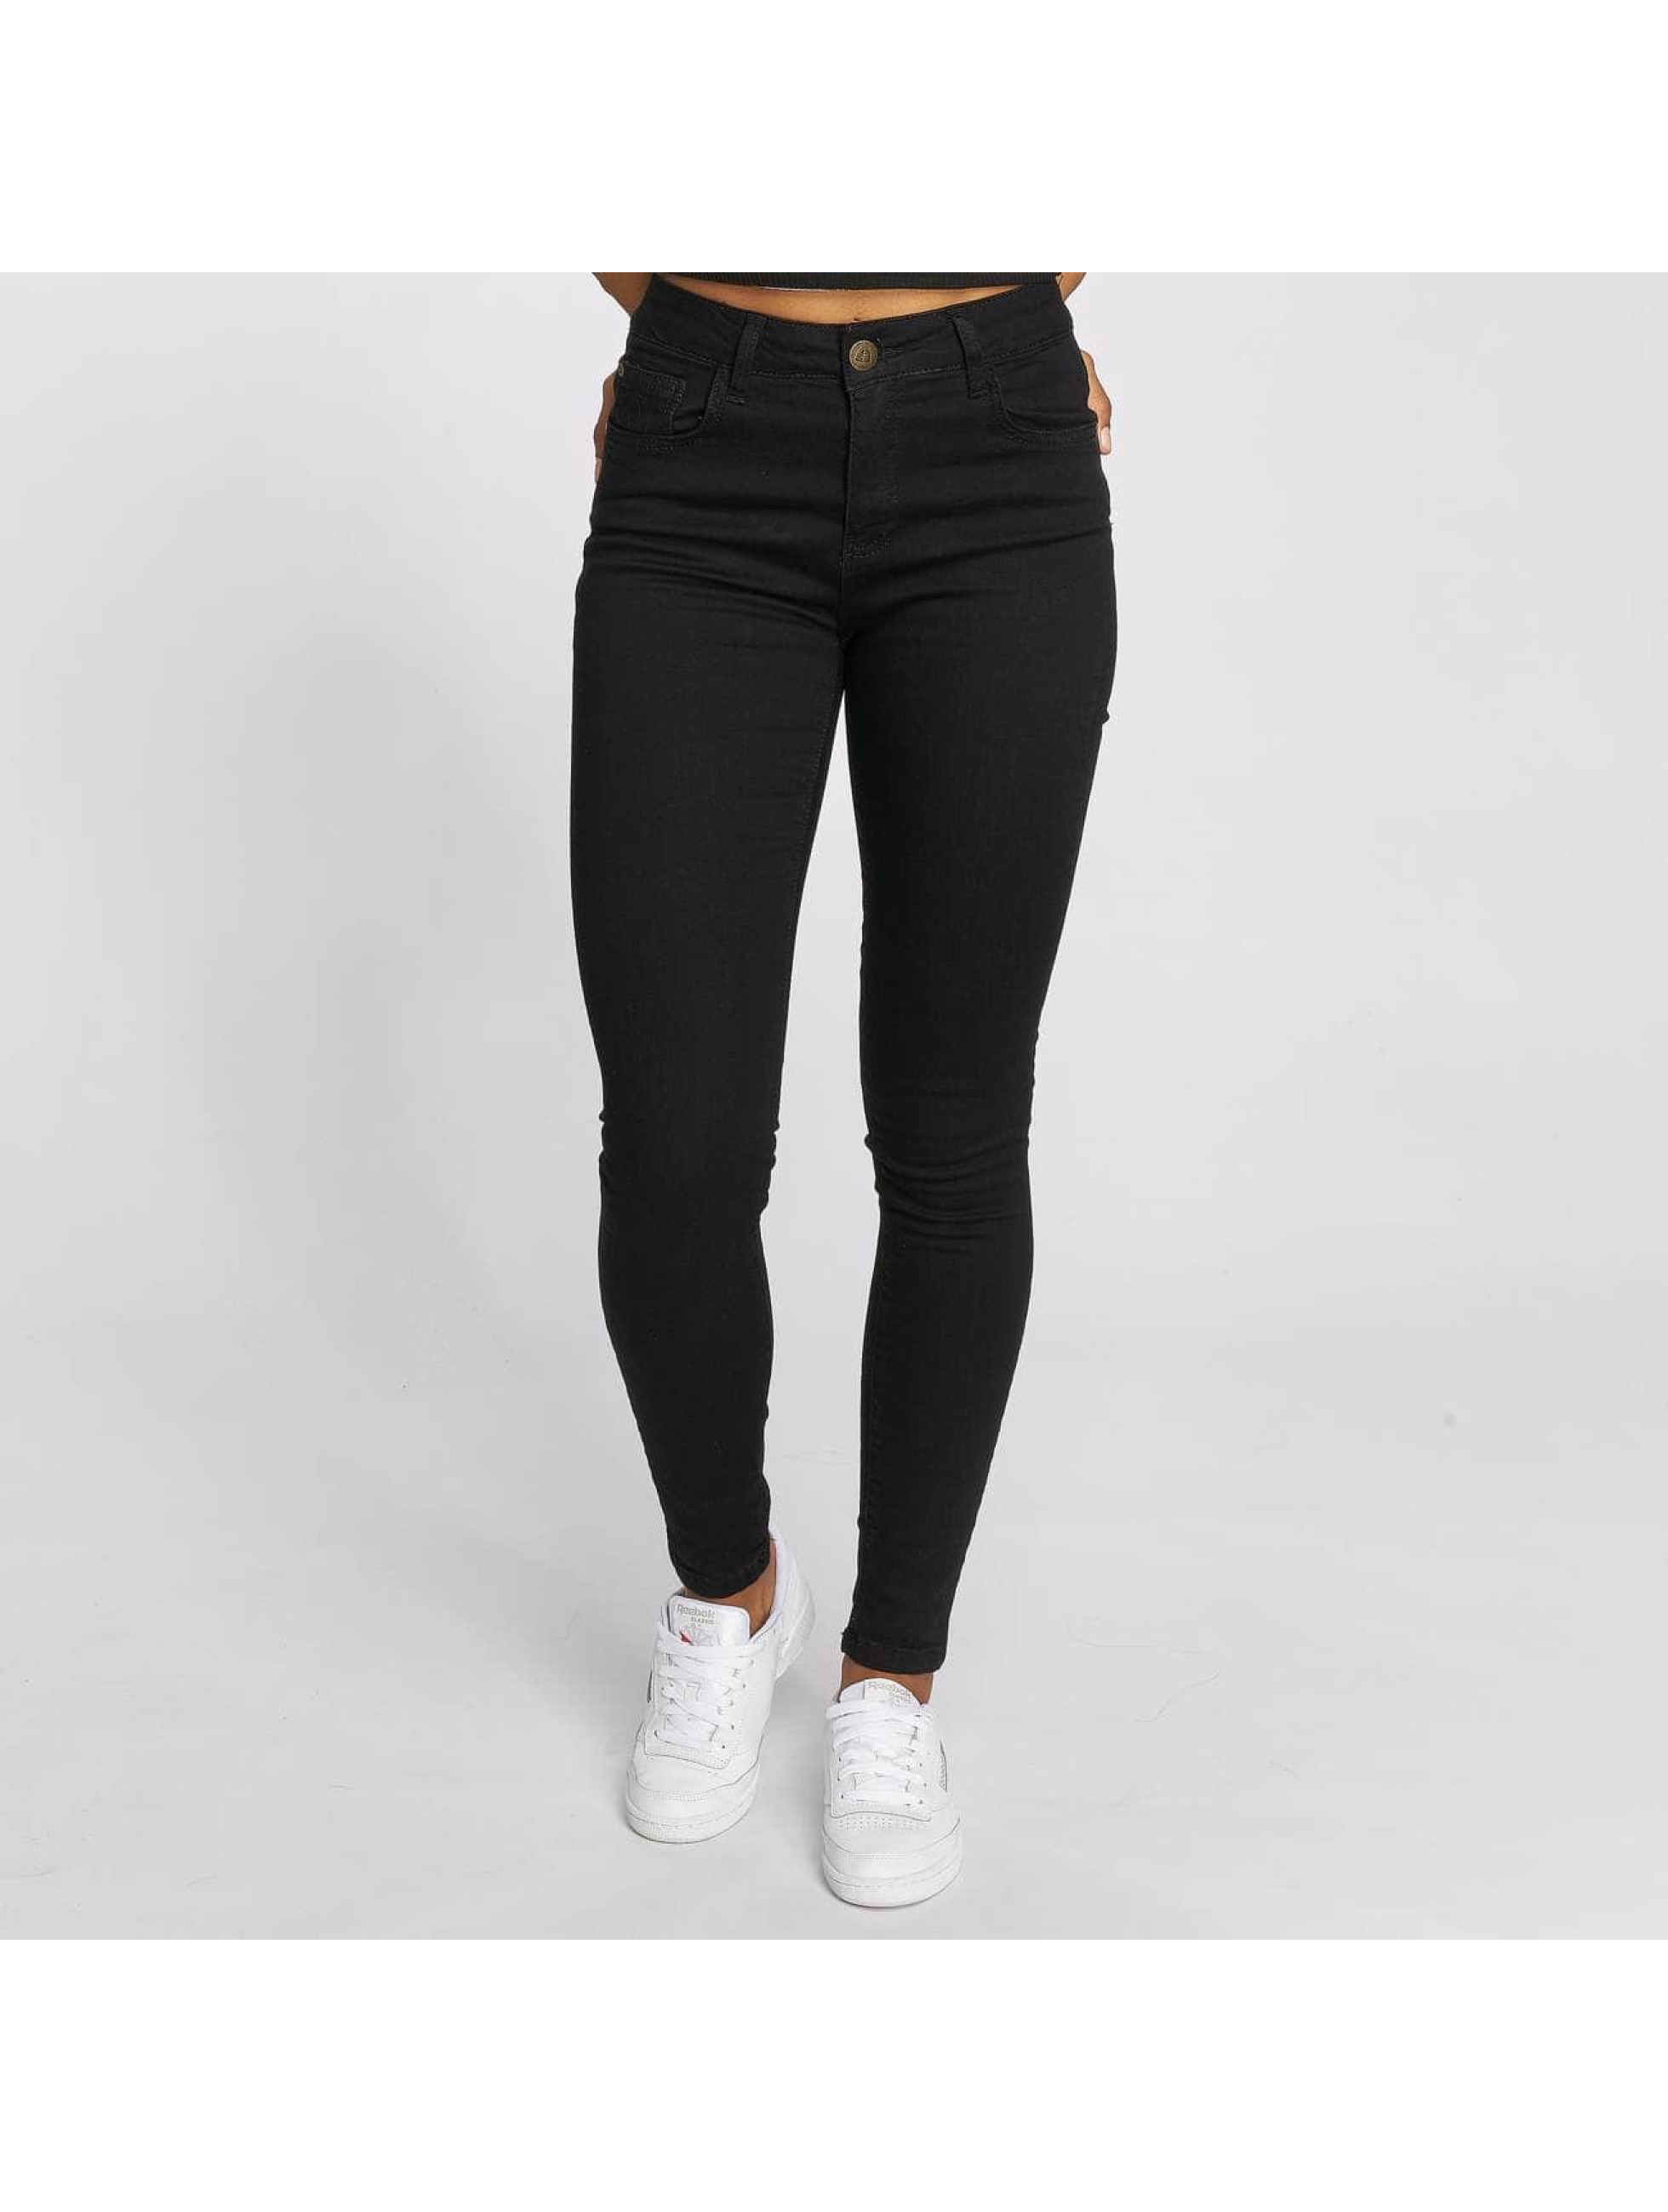 Just Rhyse / Skinny Jeans Buttercup in black W 28